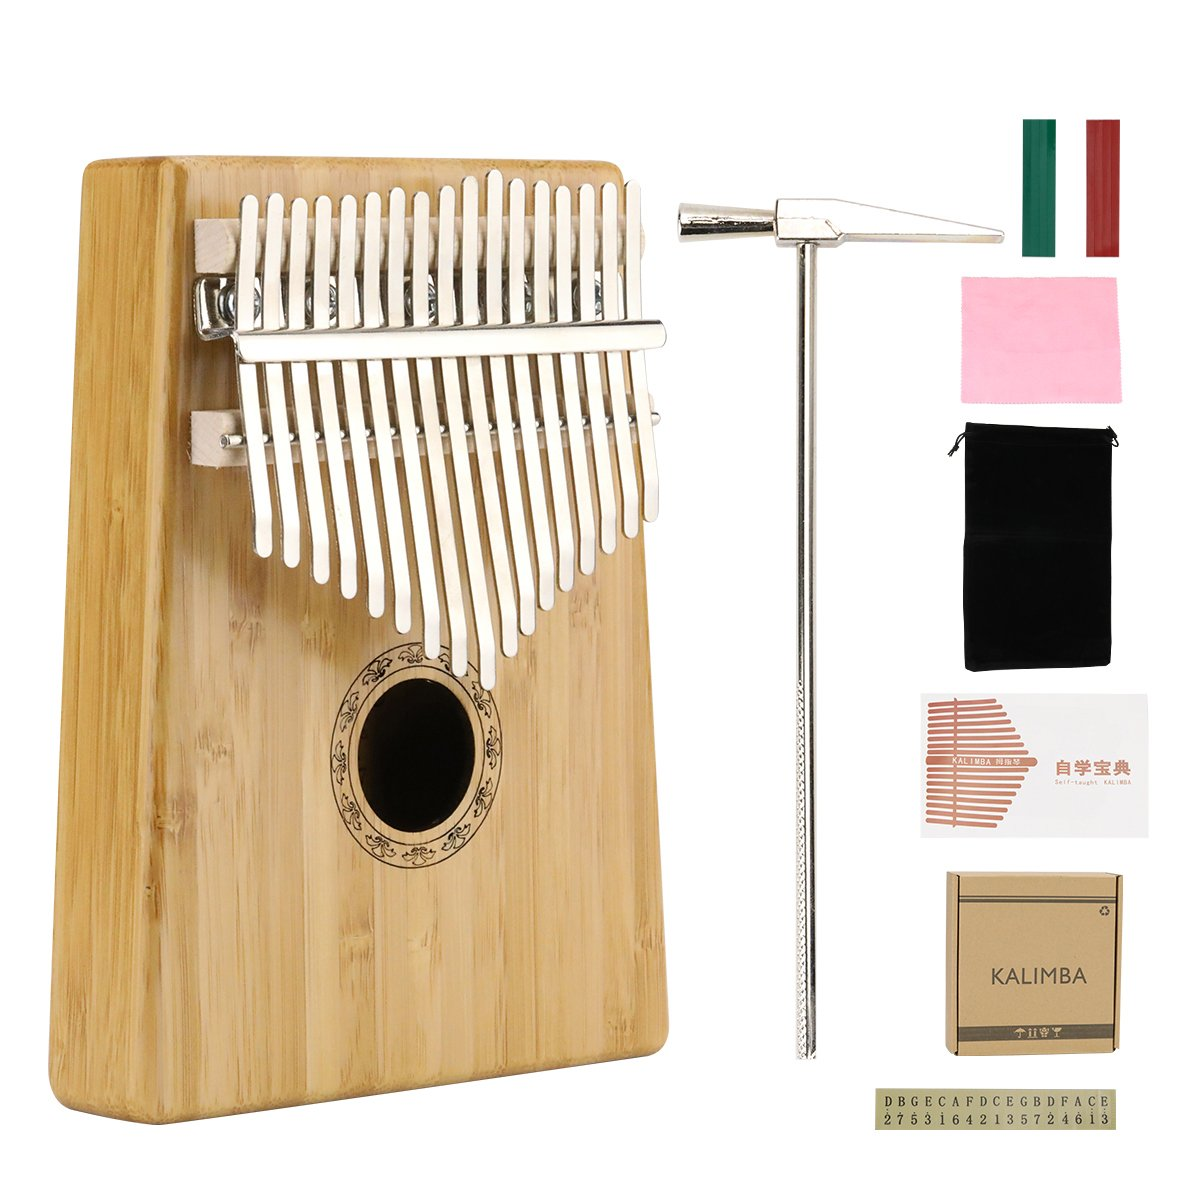 Medeer 17 Key Kalimba Thumb Piano Solid Finger Piano Mbira Sanza African Instrument with tune Hammer Study Instruction Carry Bag Musical Scale Stickers Clean Cloth